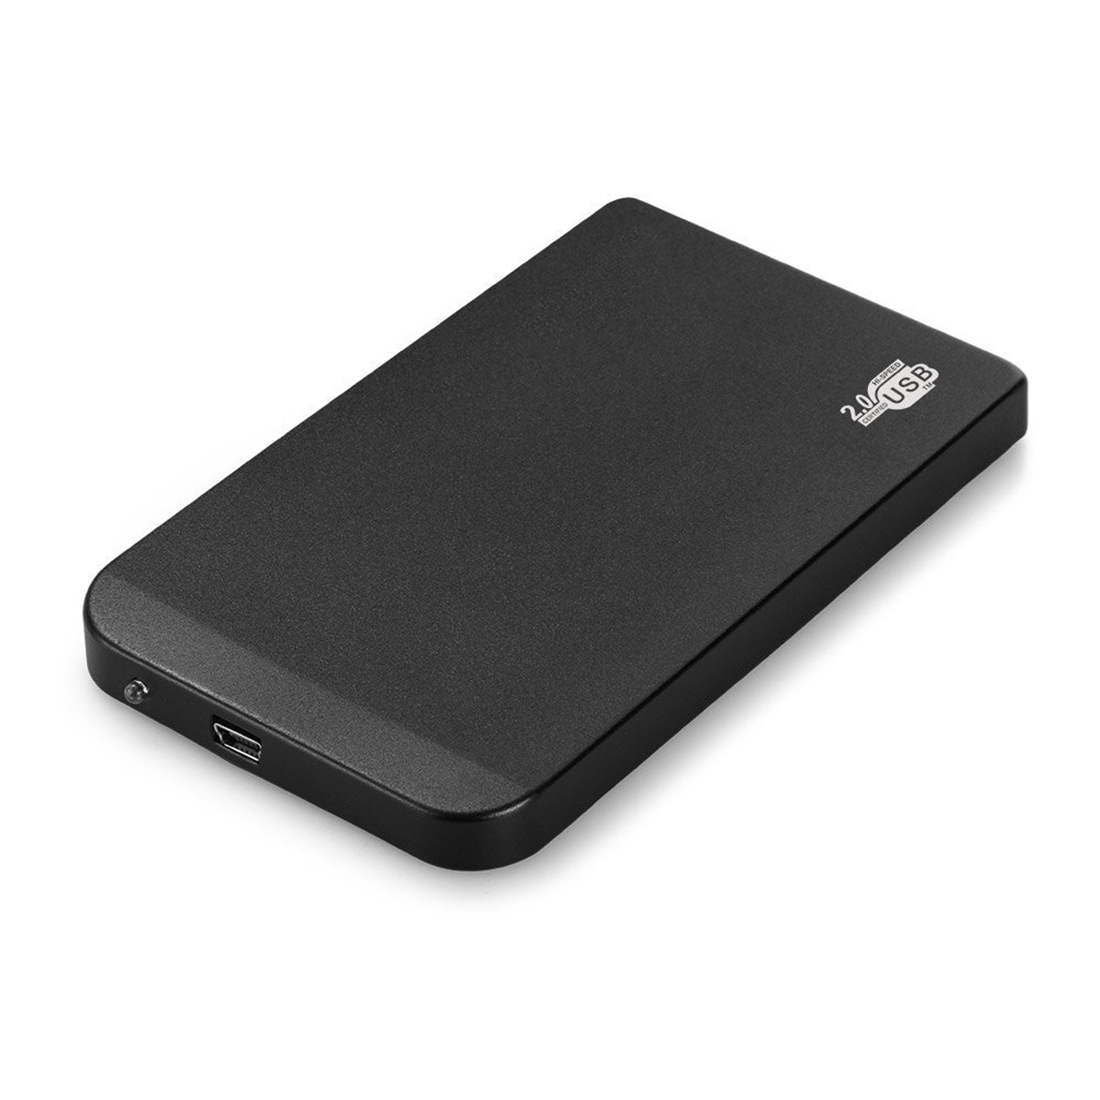 NOYOKERE 2017 new Black External Hard Drive Enclosure 2.5 Inch Usb 2.0 Ide Portable Case Hdd Ultra Thin носки высокие женские stance ines longevial stolen kiss crew multi